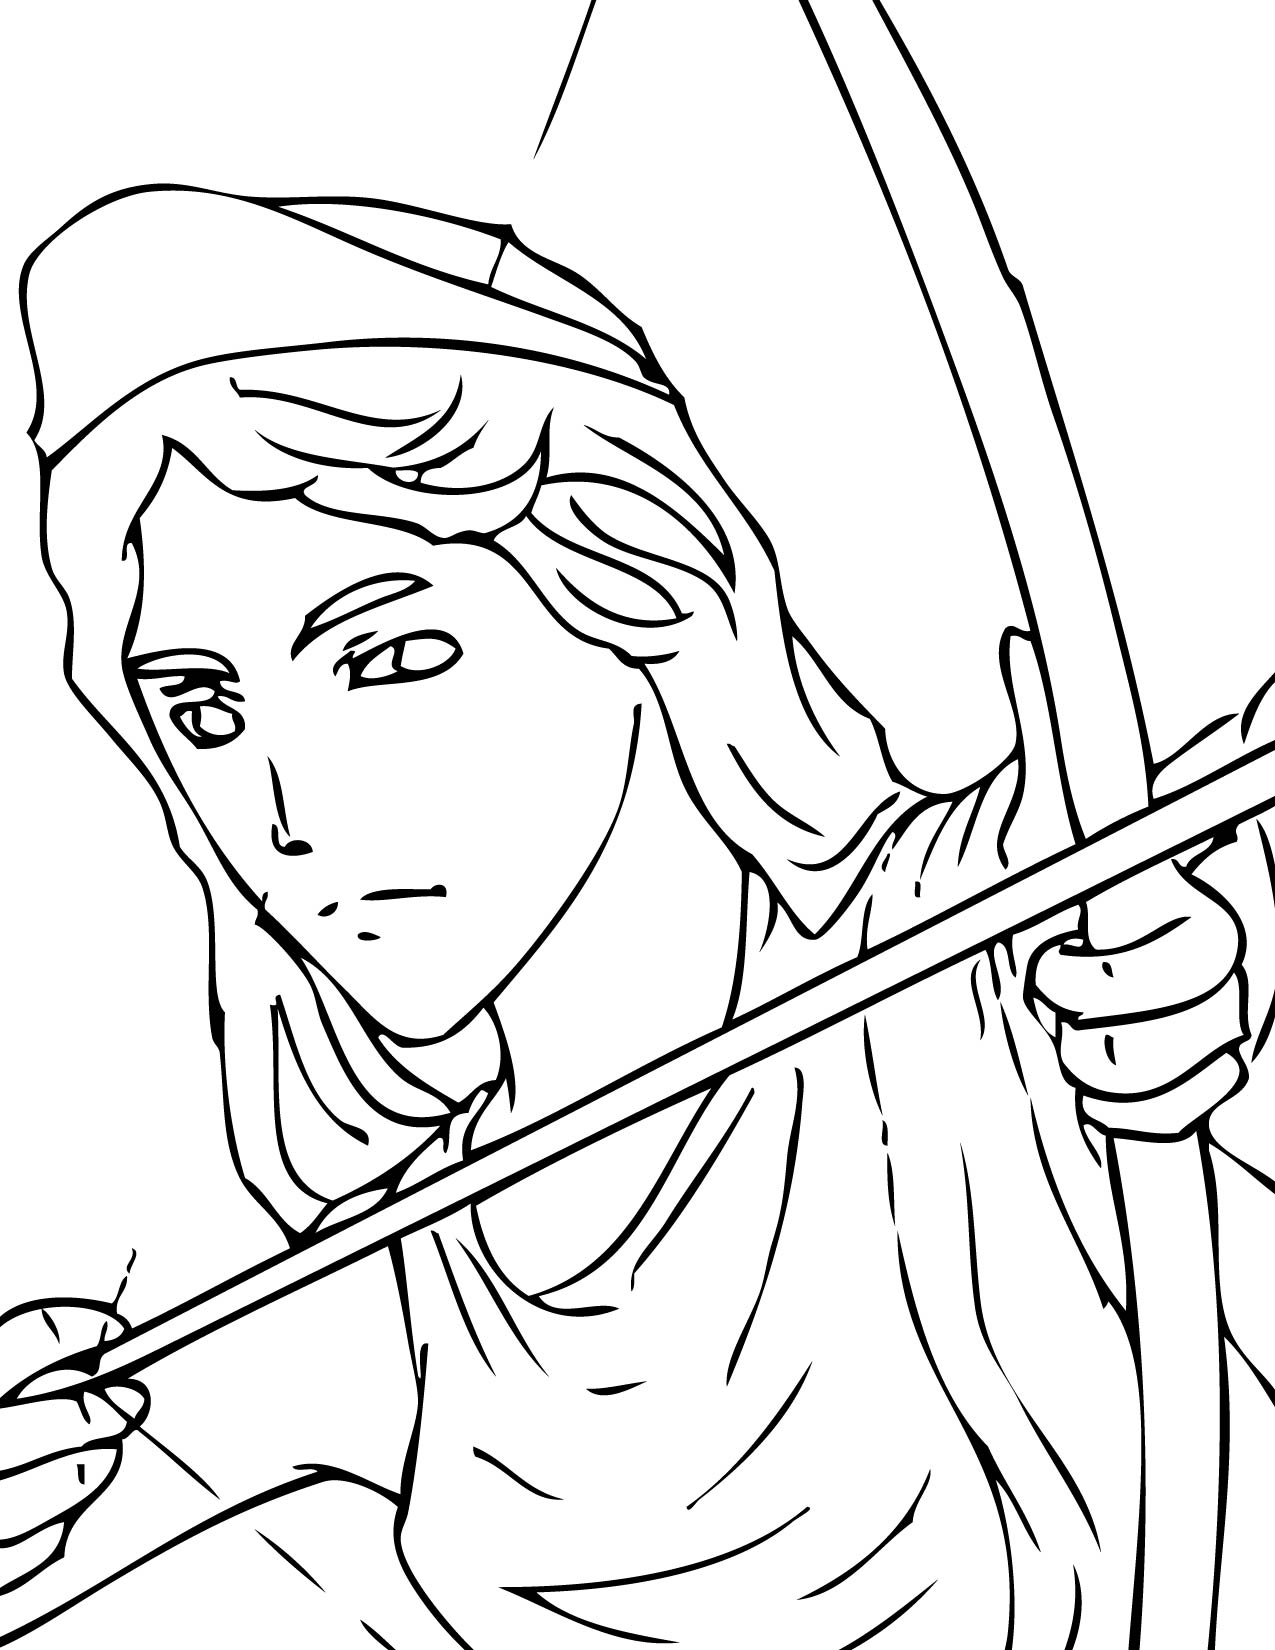 coloring pages online greek myths - photo#30